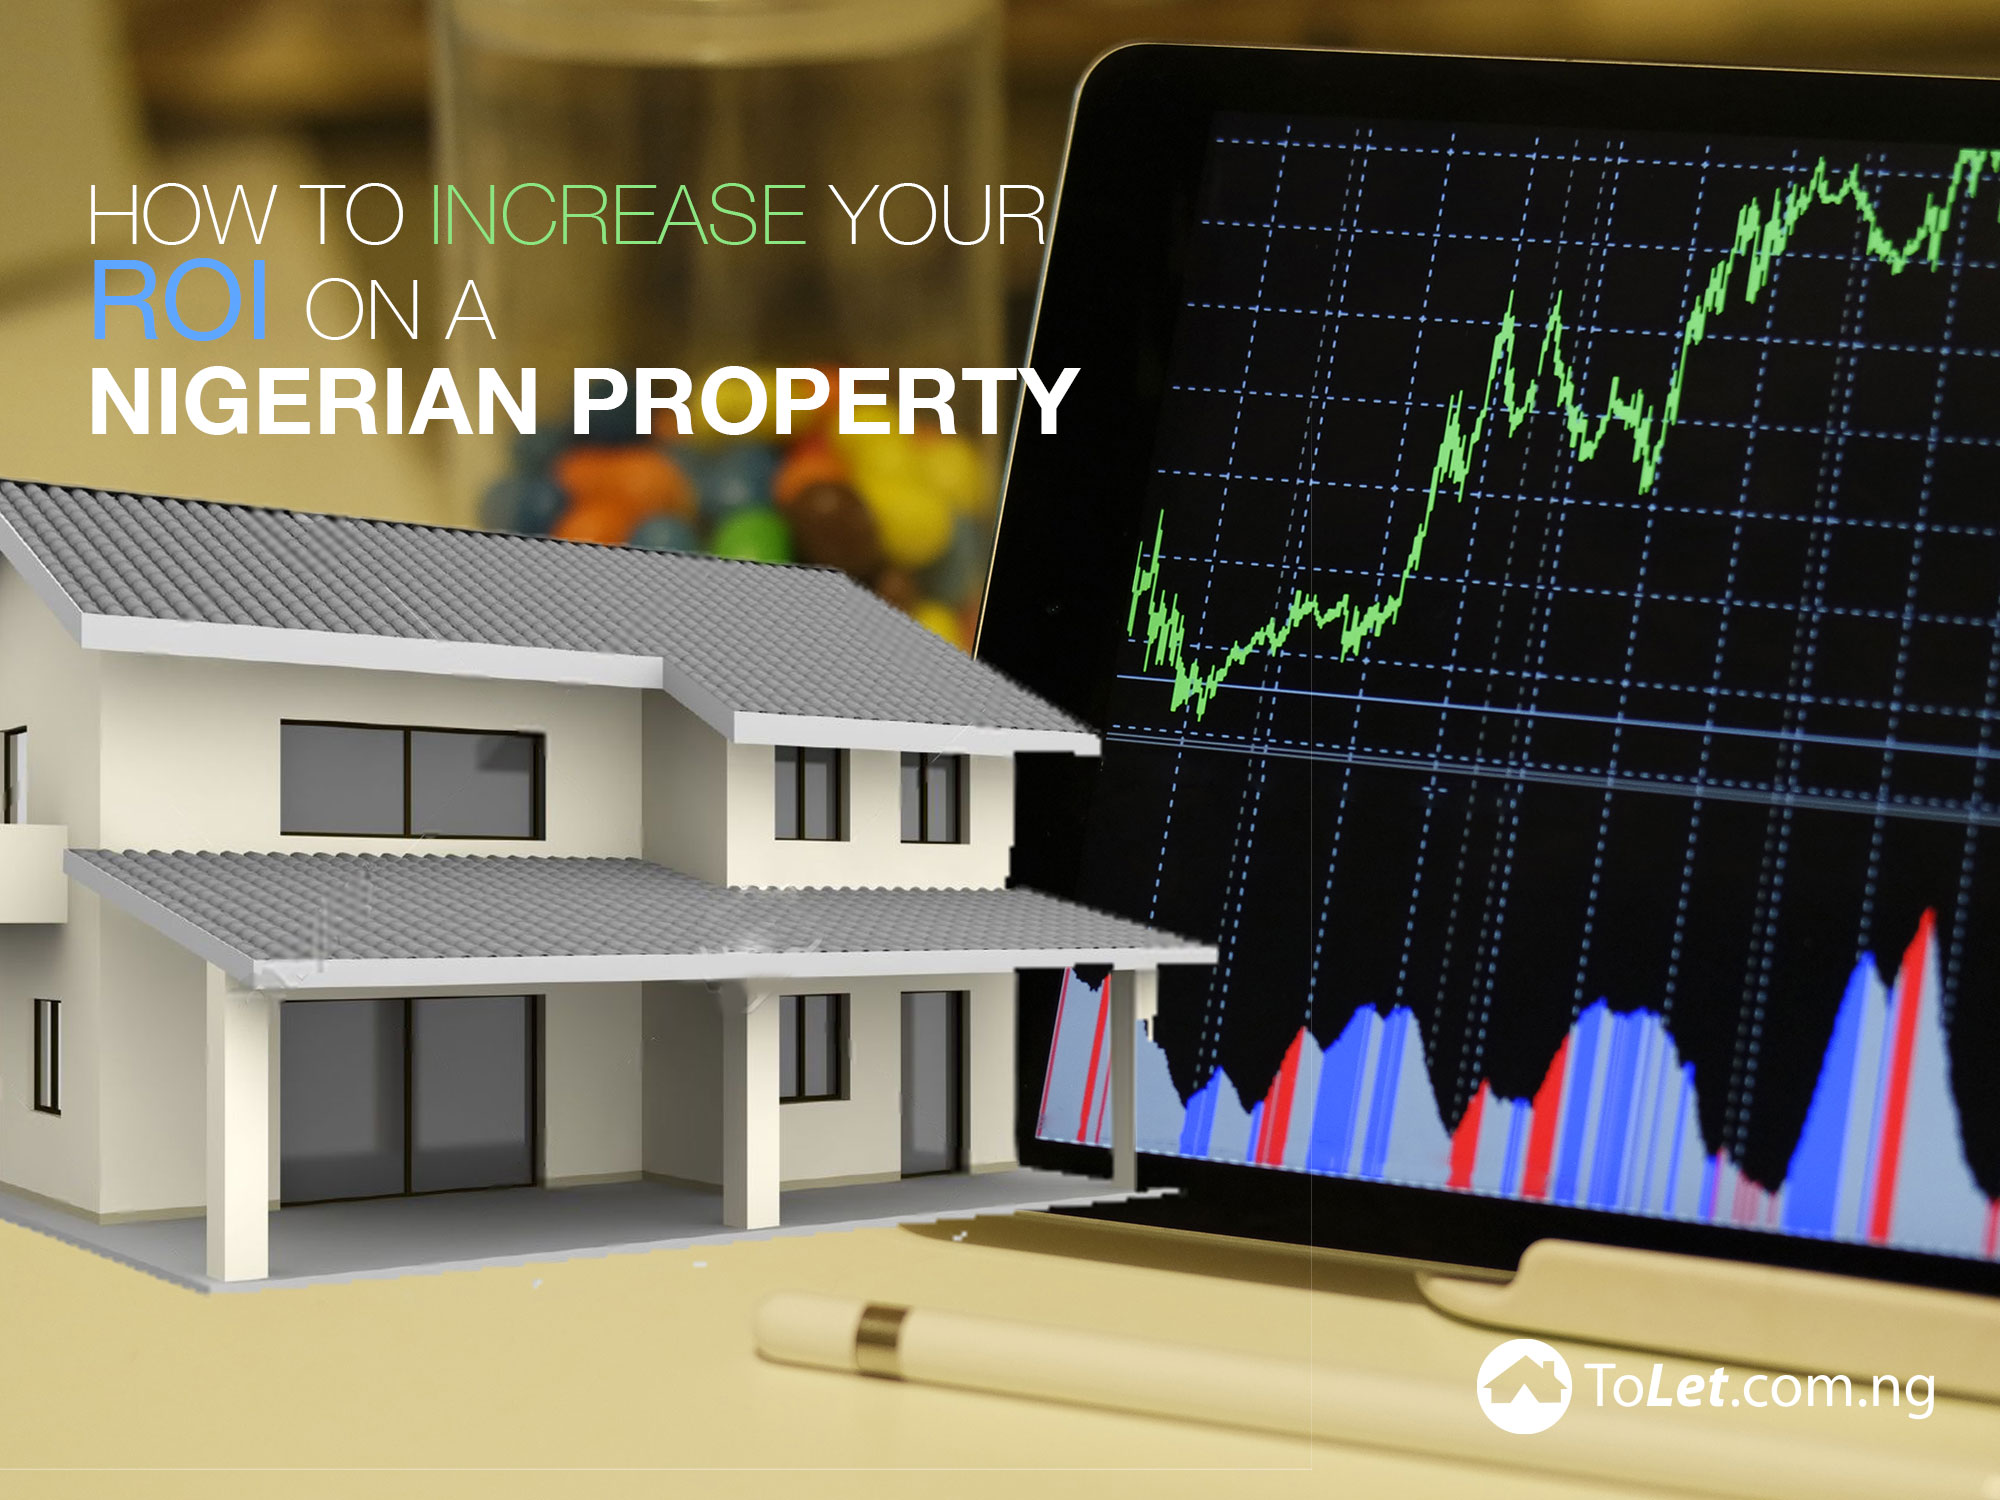 How To Increase Your ROI On A Nigerian Property